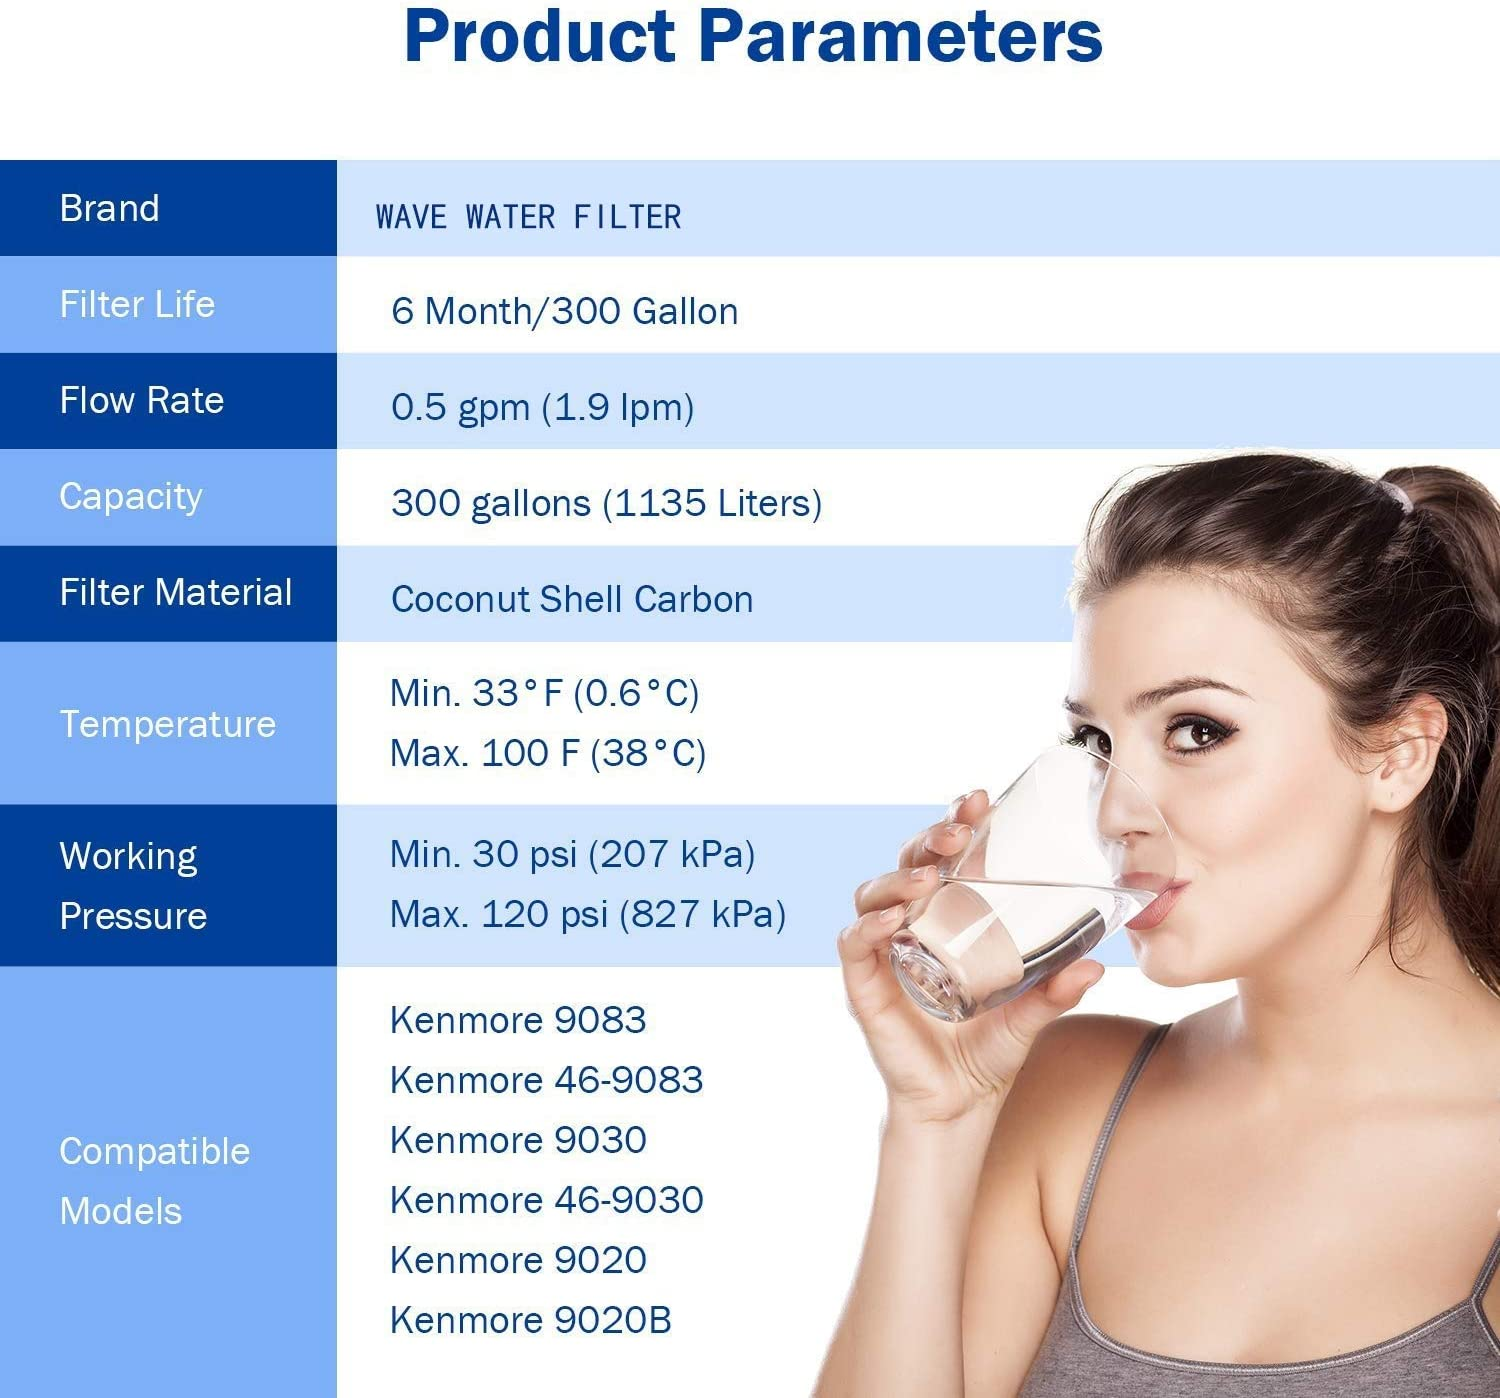 EDR3RXD1 Kenmore 9083 iFWdigi 4396841 Water Filter Cap Compatible with 4396710 P2RFWG2 Kenmore 9030-3-Pcs Filter 3